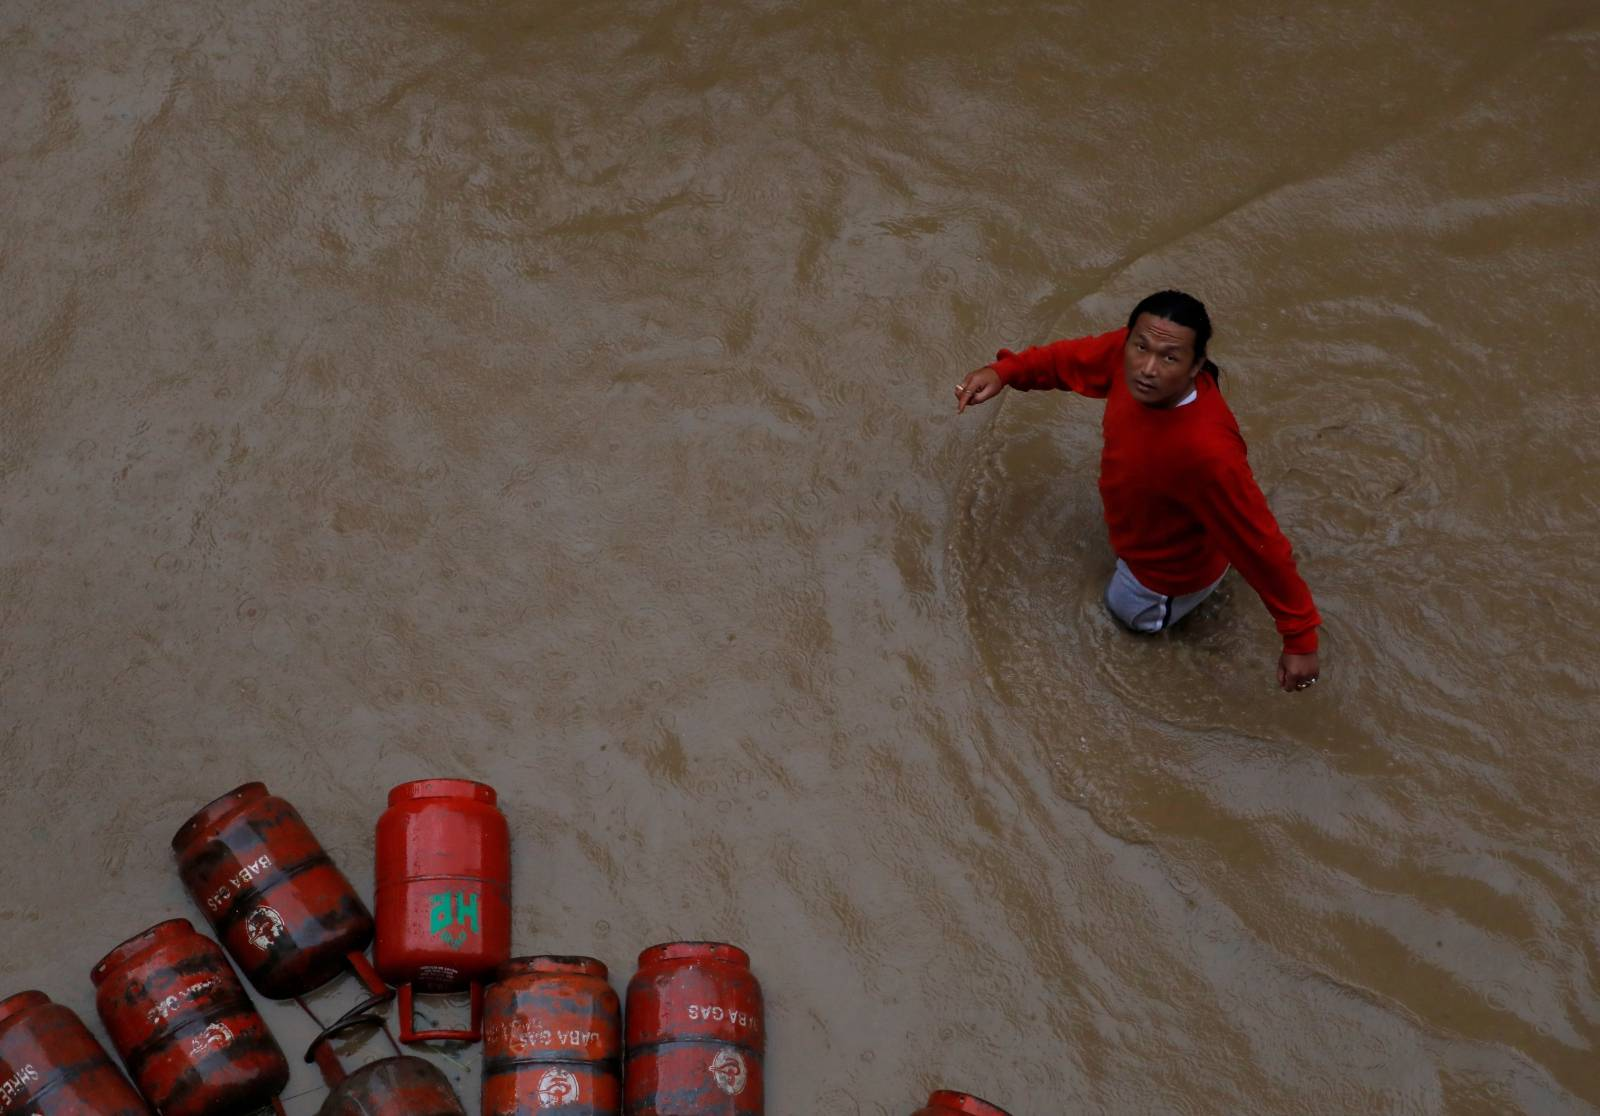 FILE PHOTO: A man walks past gas cylinders in a flooded colony in Kathmandu